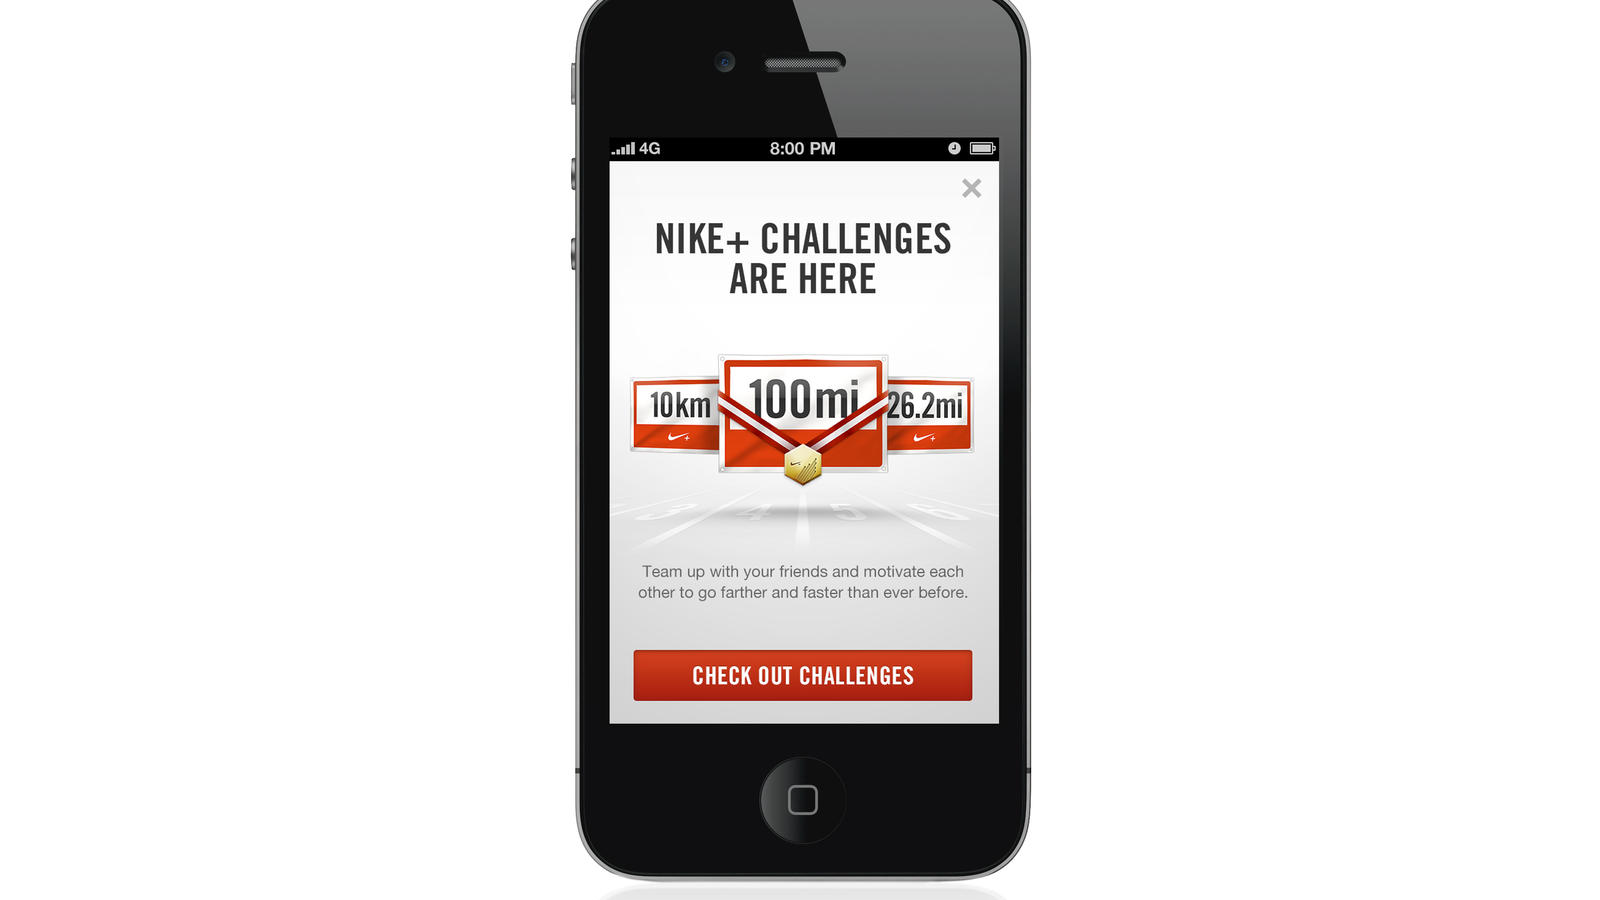 Nike+ Challenges